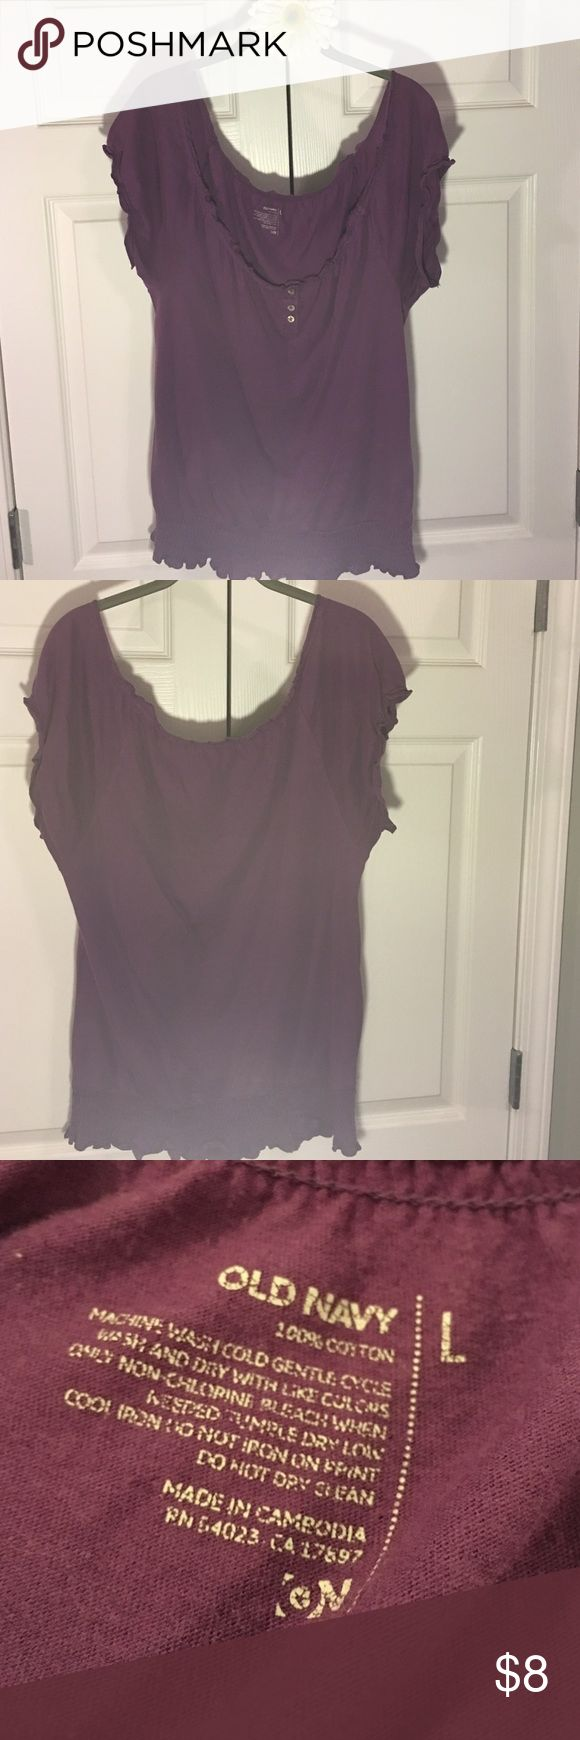 Plum Top Old Navy Large Short Sleeved Cotton Top. Banded elastic waist, elastic arms. Old Navy Large. Runs more like an XL. Crew Neck. Old Navy Tops Blouses